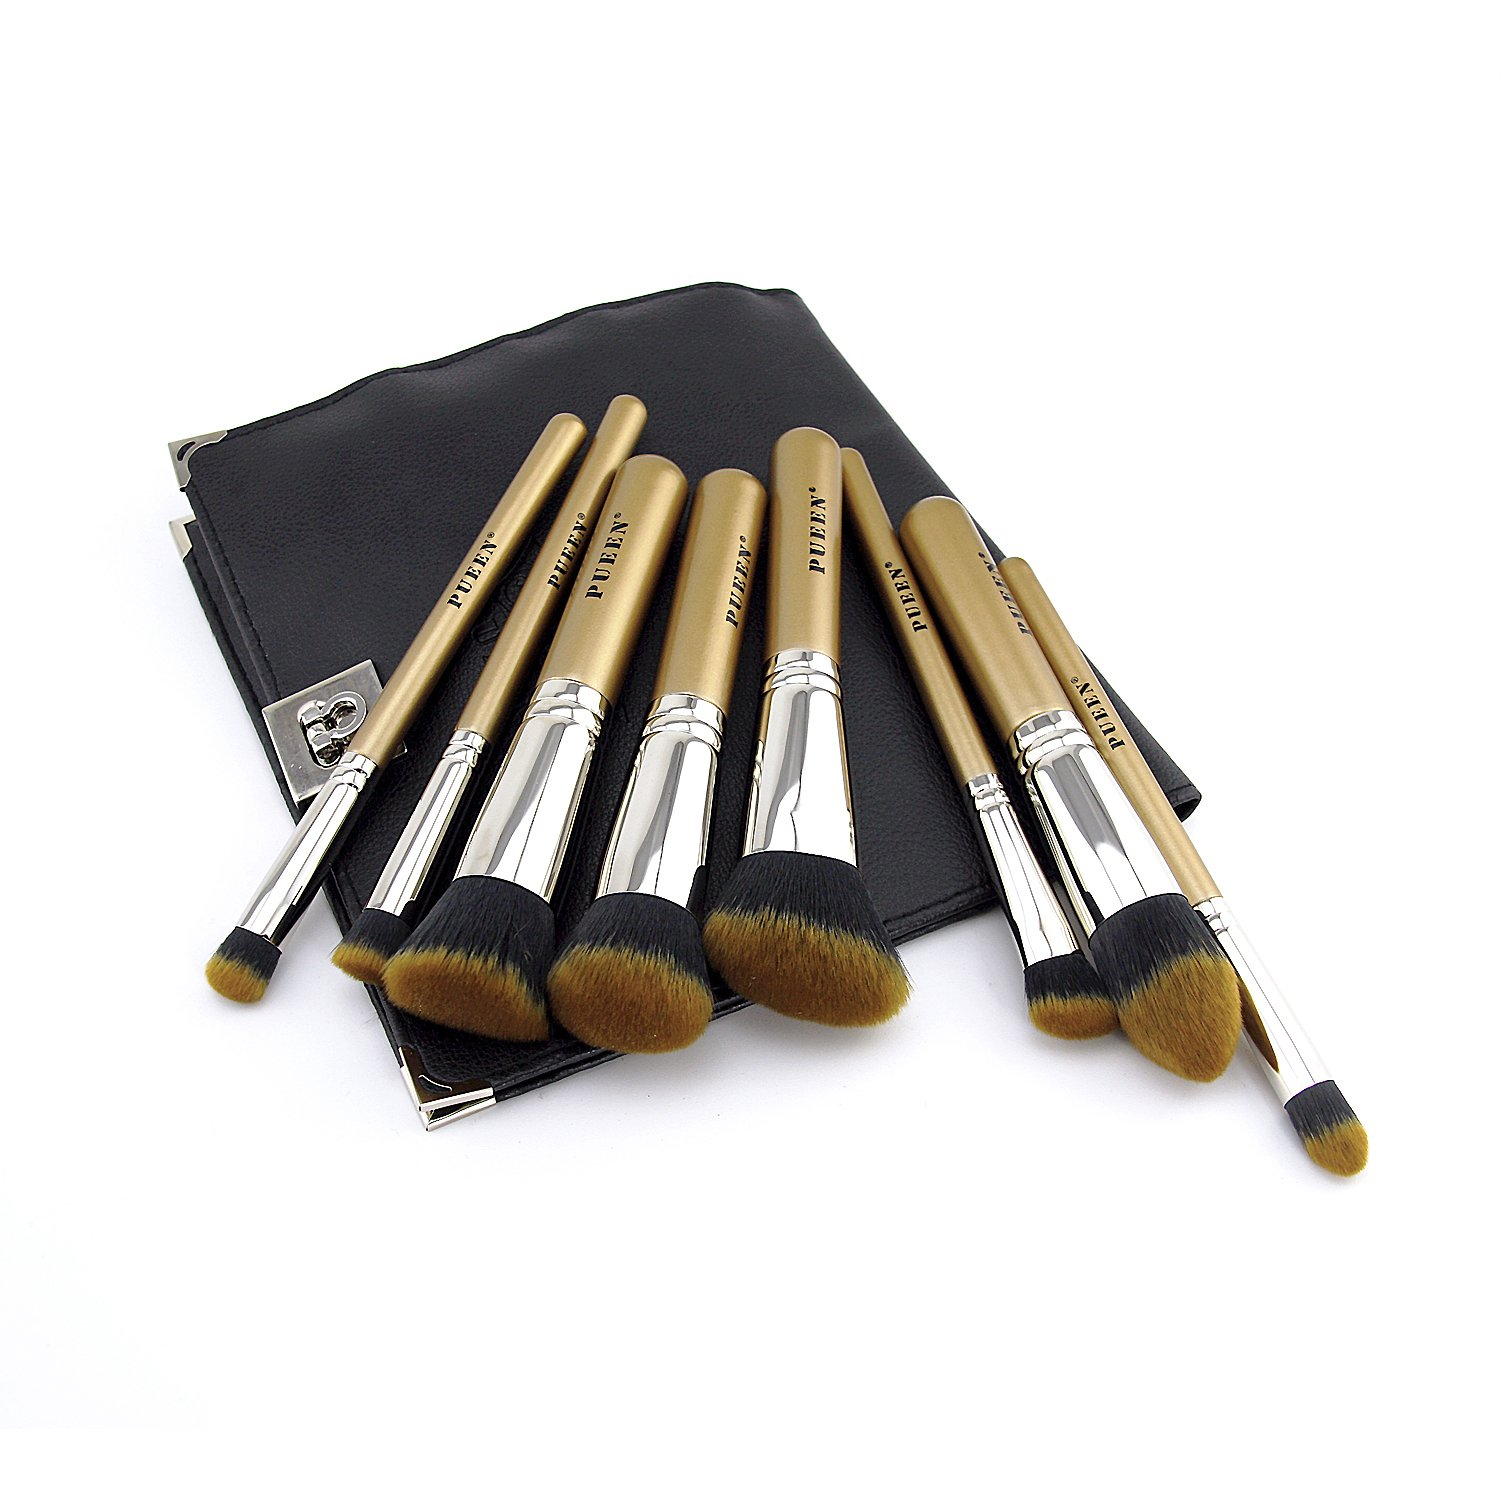 PUEEN Professional Kabuki Makeup Brush Set - Premium Quality Hand-crafted Cosmetic Brushes Kit - 8 Piece Collection - 100% Pure Luxury Copper Ferrules! BIG SALE -BH000176